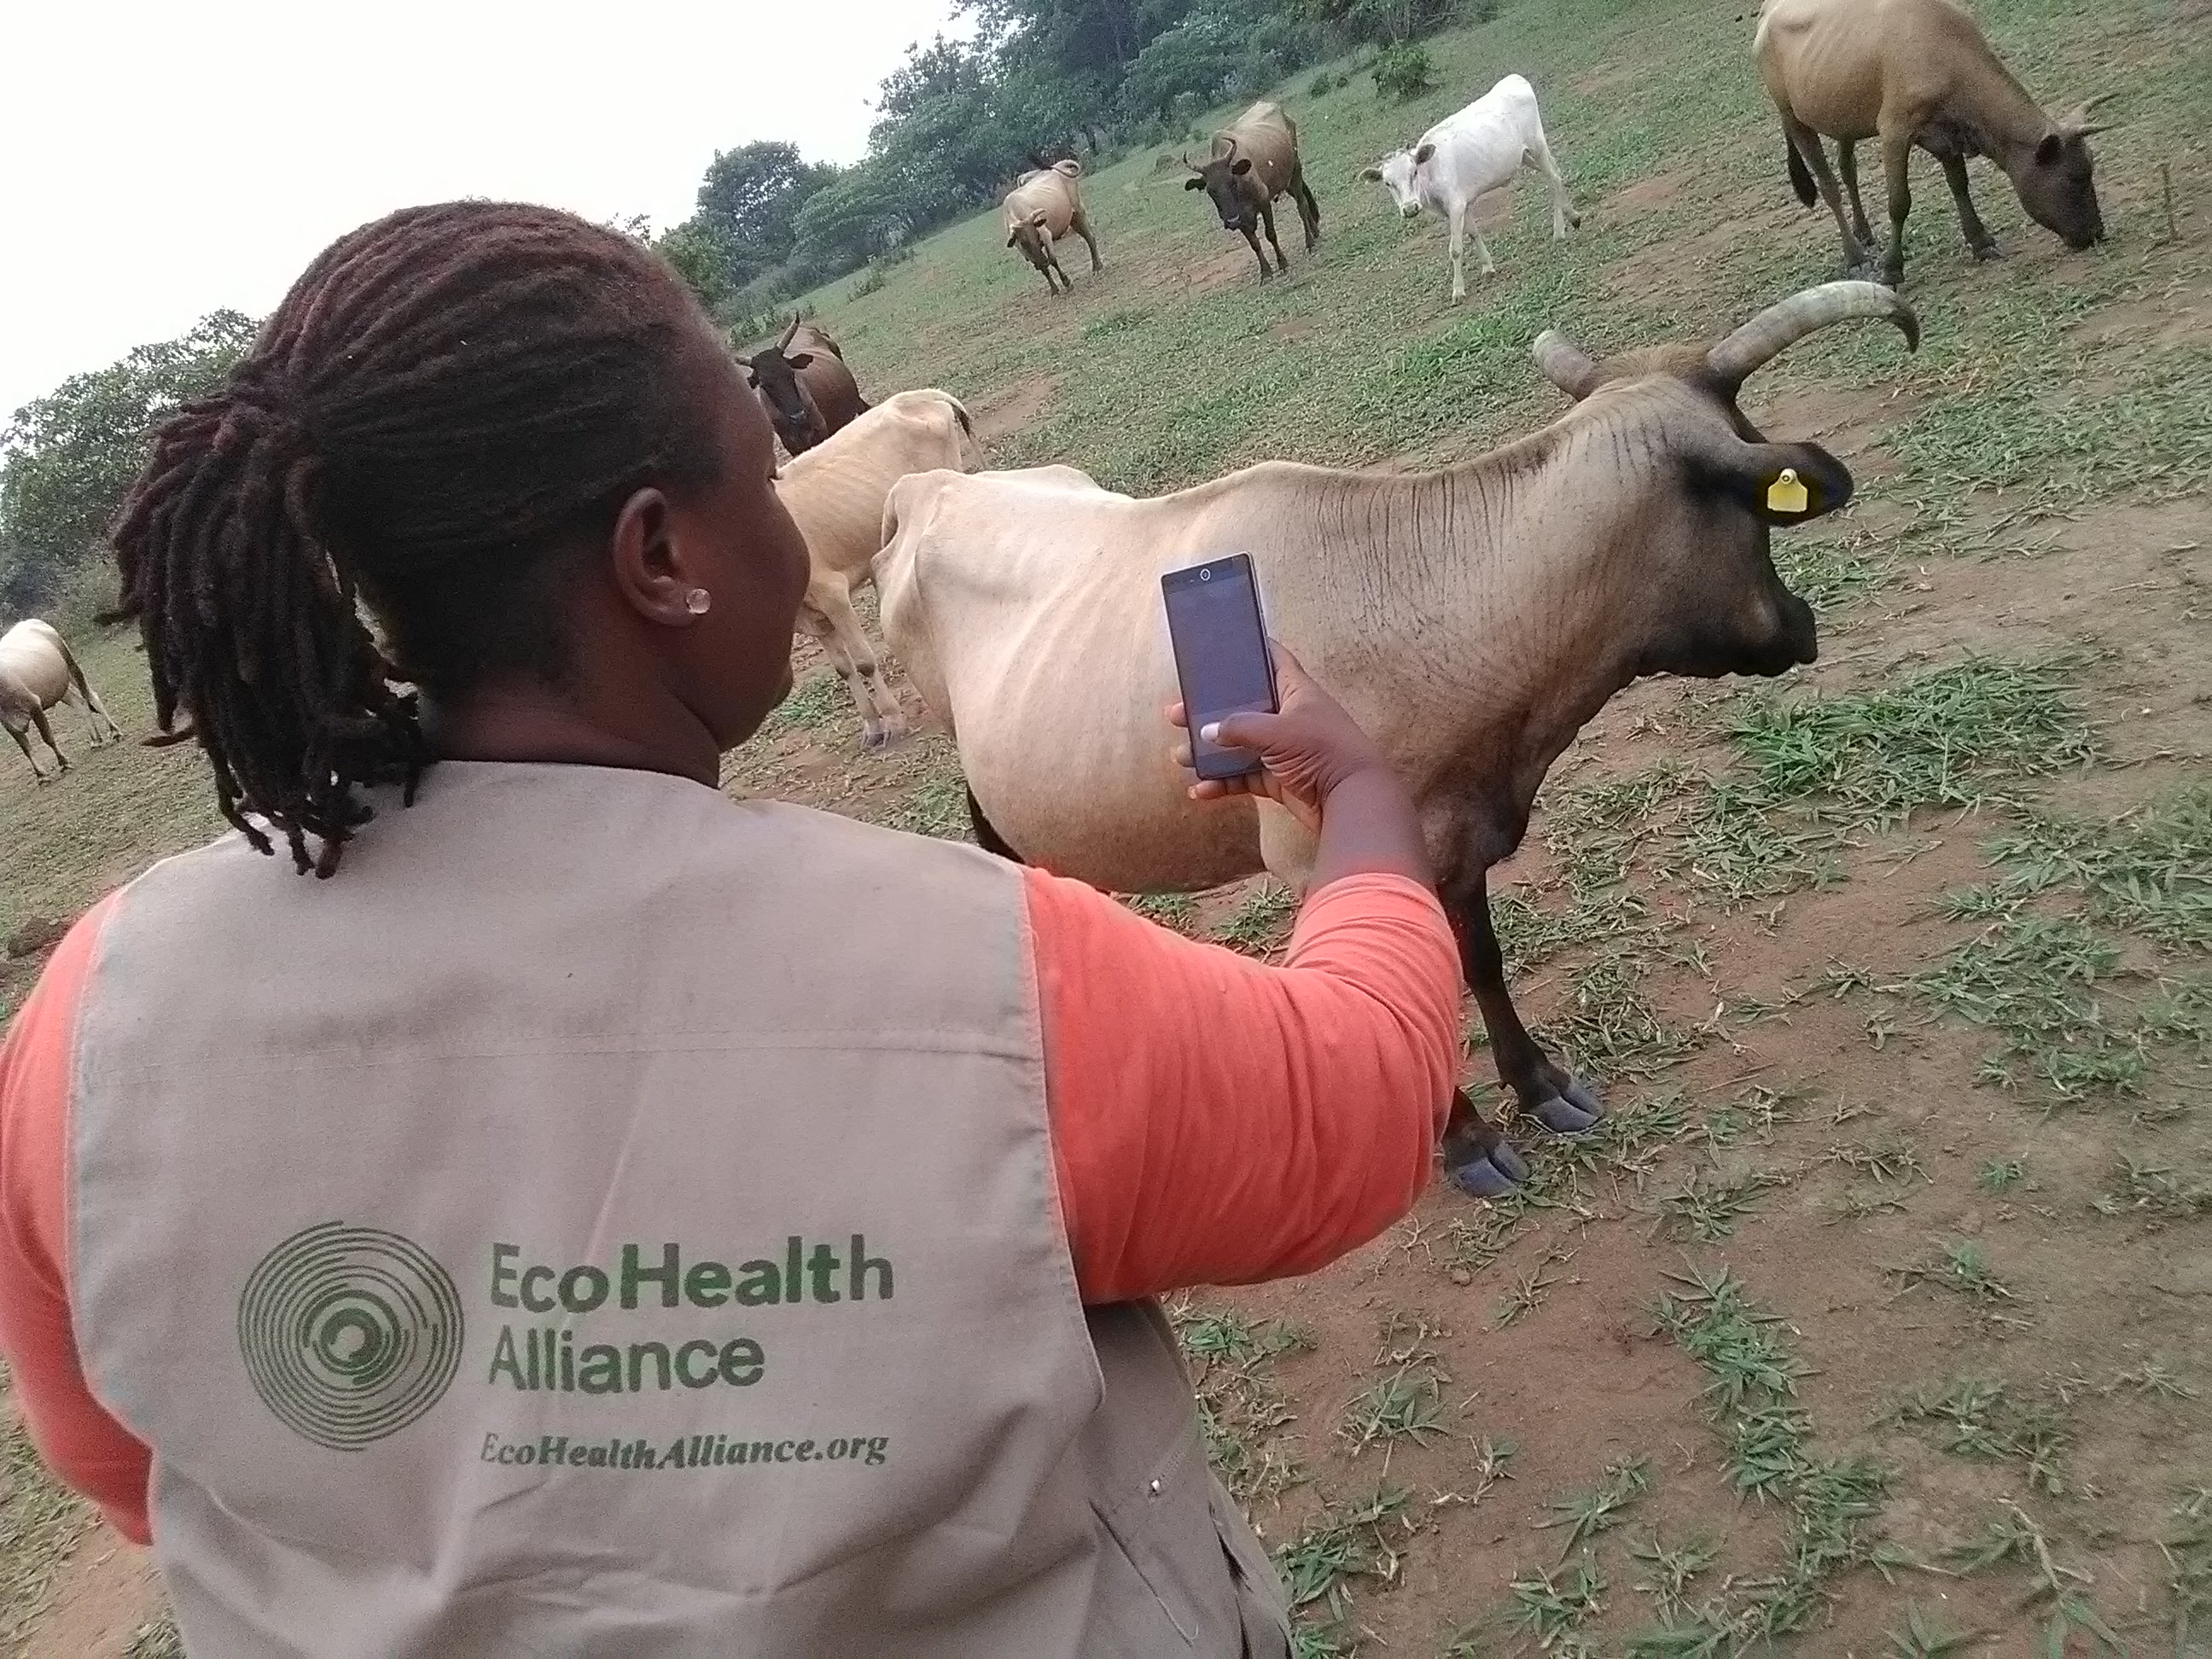 Nenneh conducting field work for EcoHealth Alliance in Liberia